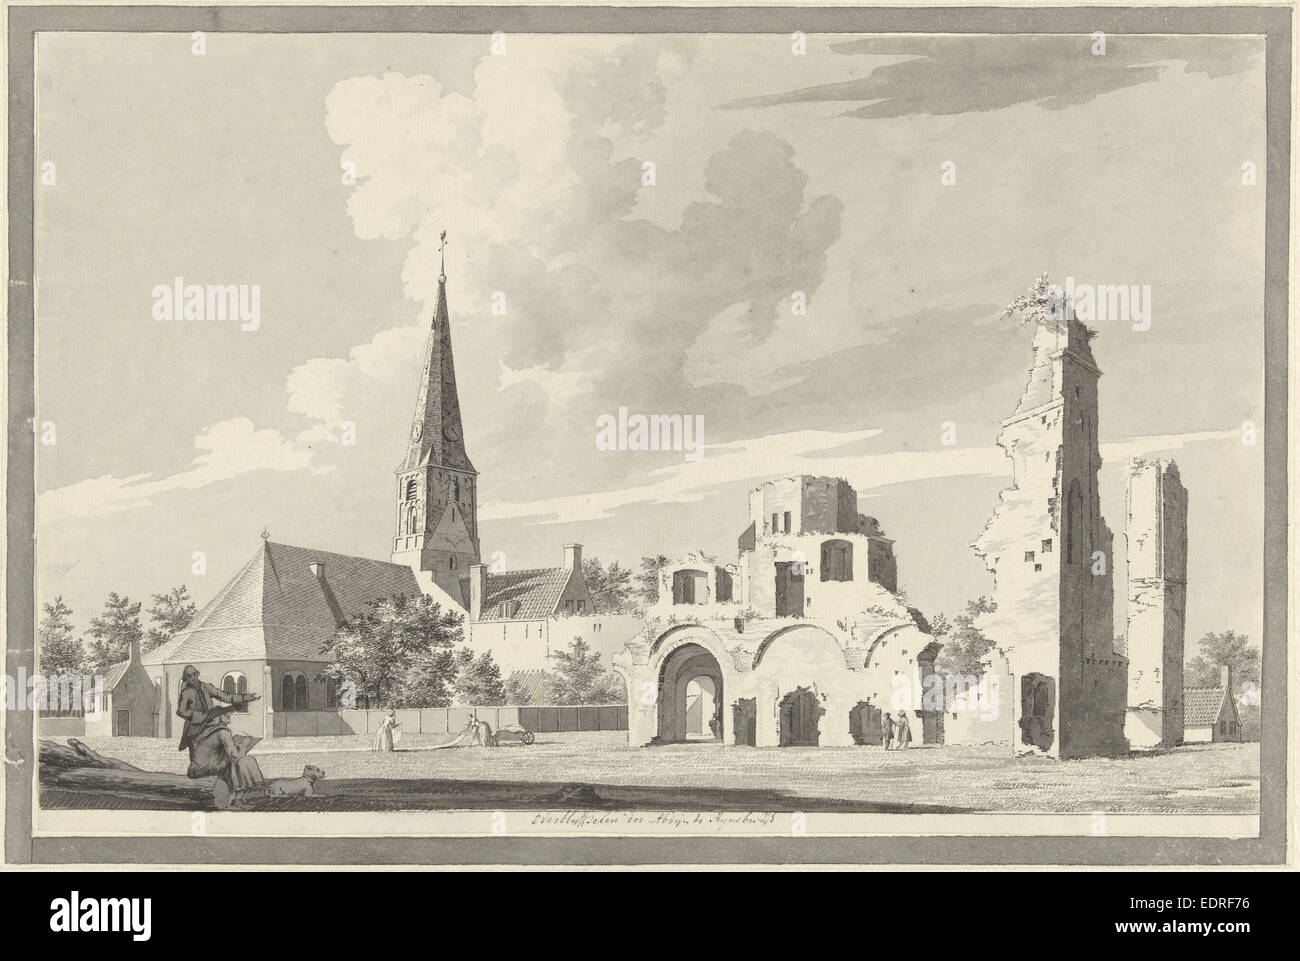 The ruins of the abbey of Rijnsburg The Netherlands, Gerrit Toorenburgh, 1742 - 1785 - Stock Image